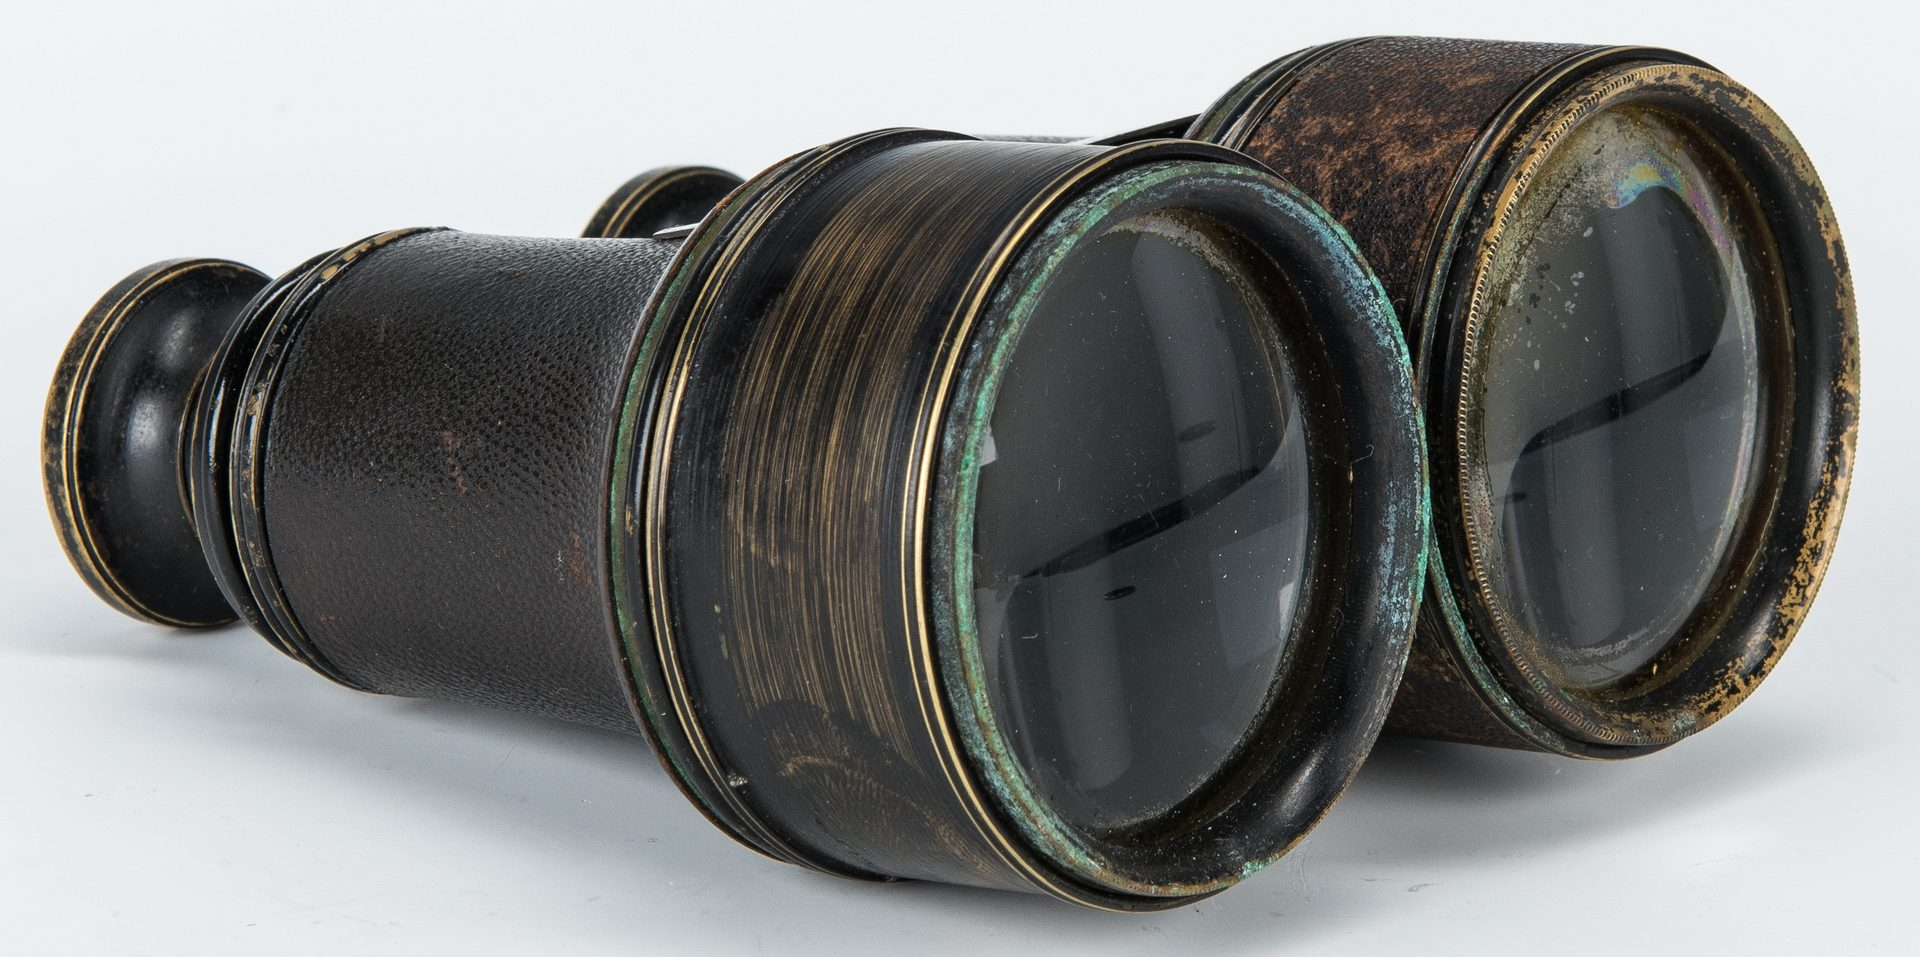 Lot 399: Binoculars Awarded to Captain Robert M. Lavender, Boston, MA, 1878